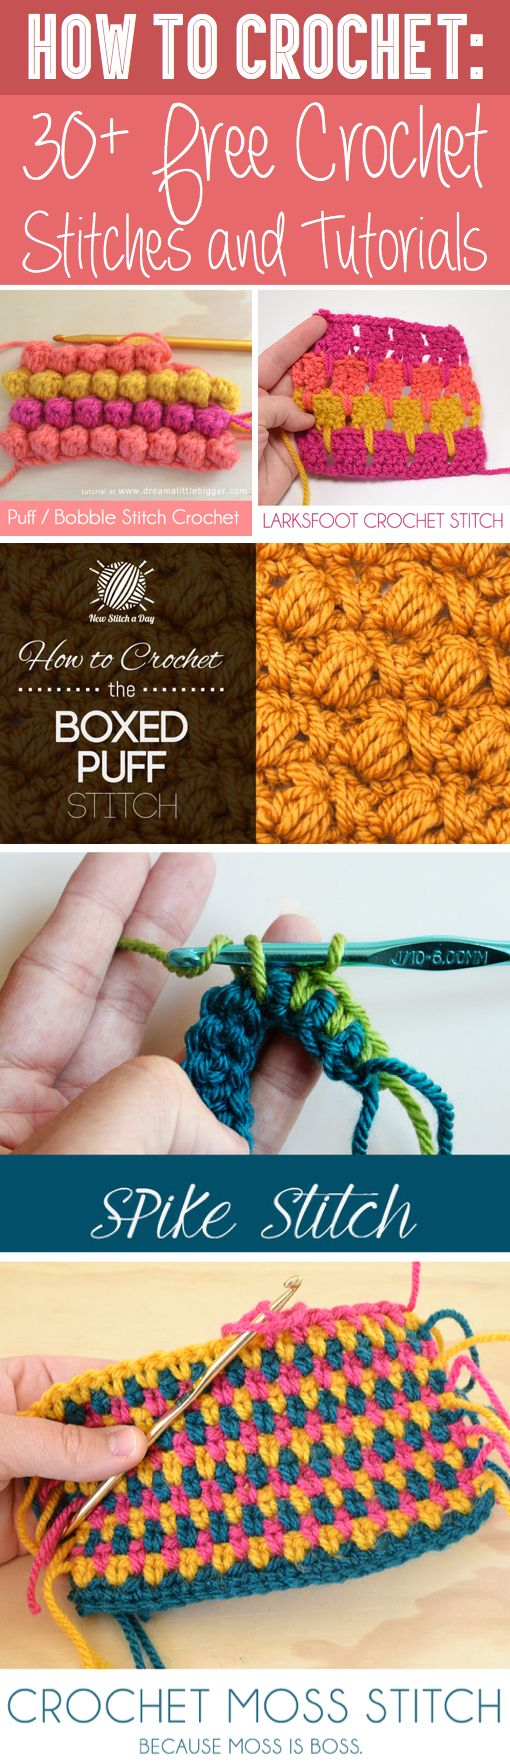 How+To+Crochet:+30++Free+Crochet+Stitches+and+Tutorials | Crochet ...